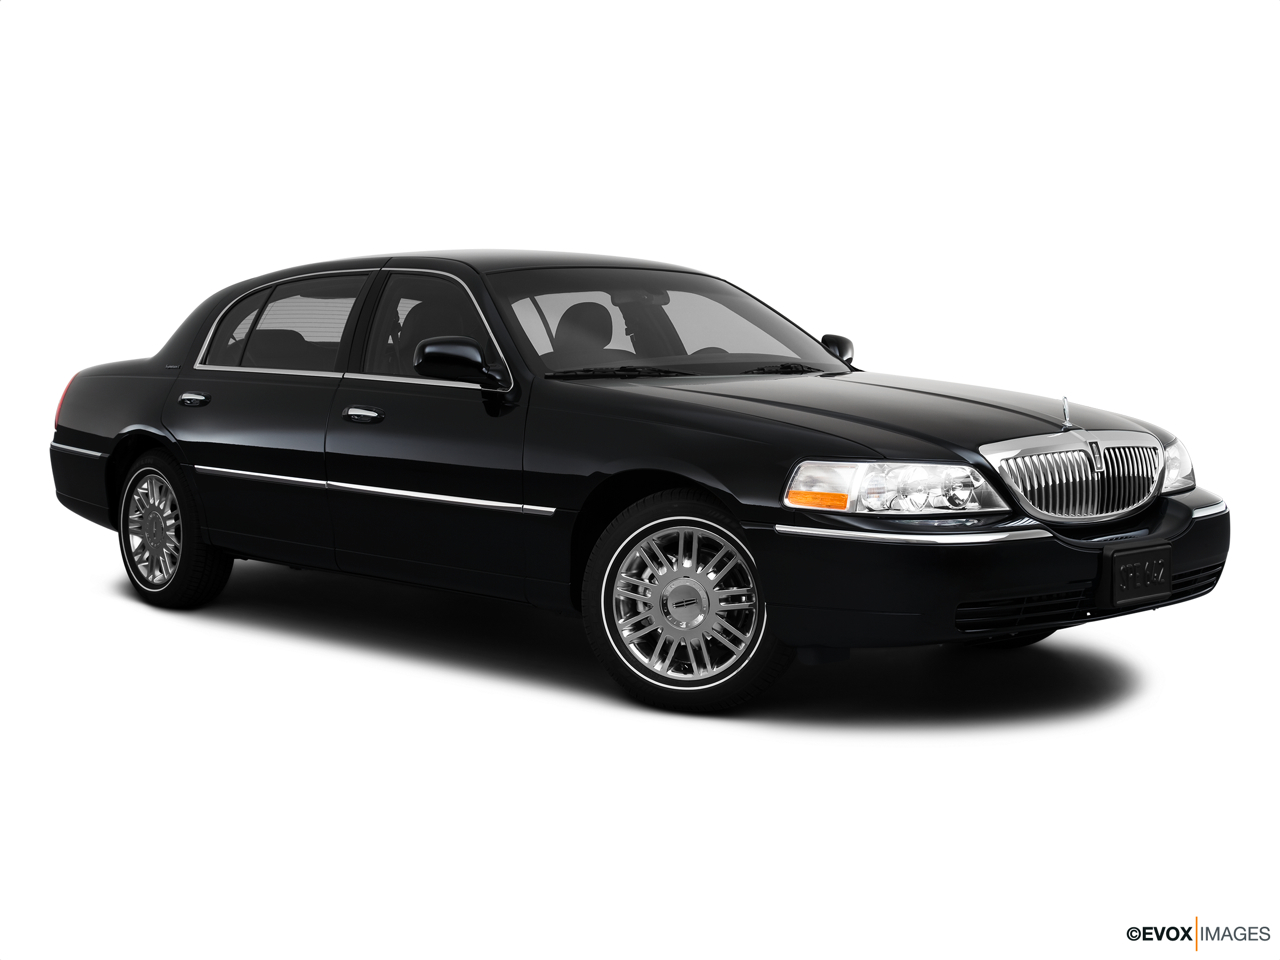 2010 Lincoln Town Car Signature L Front passenger 3/4 w/ wheels turned.